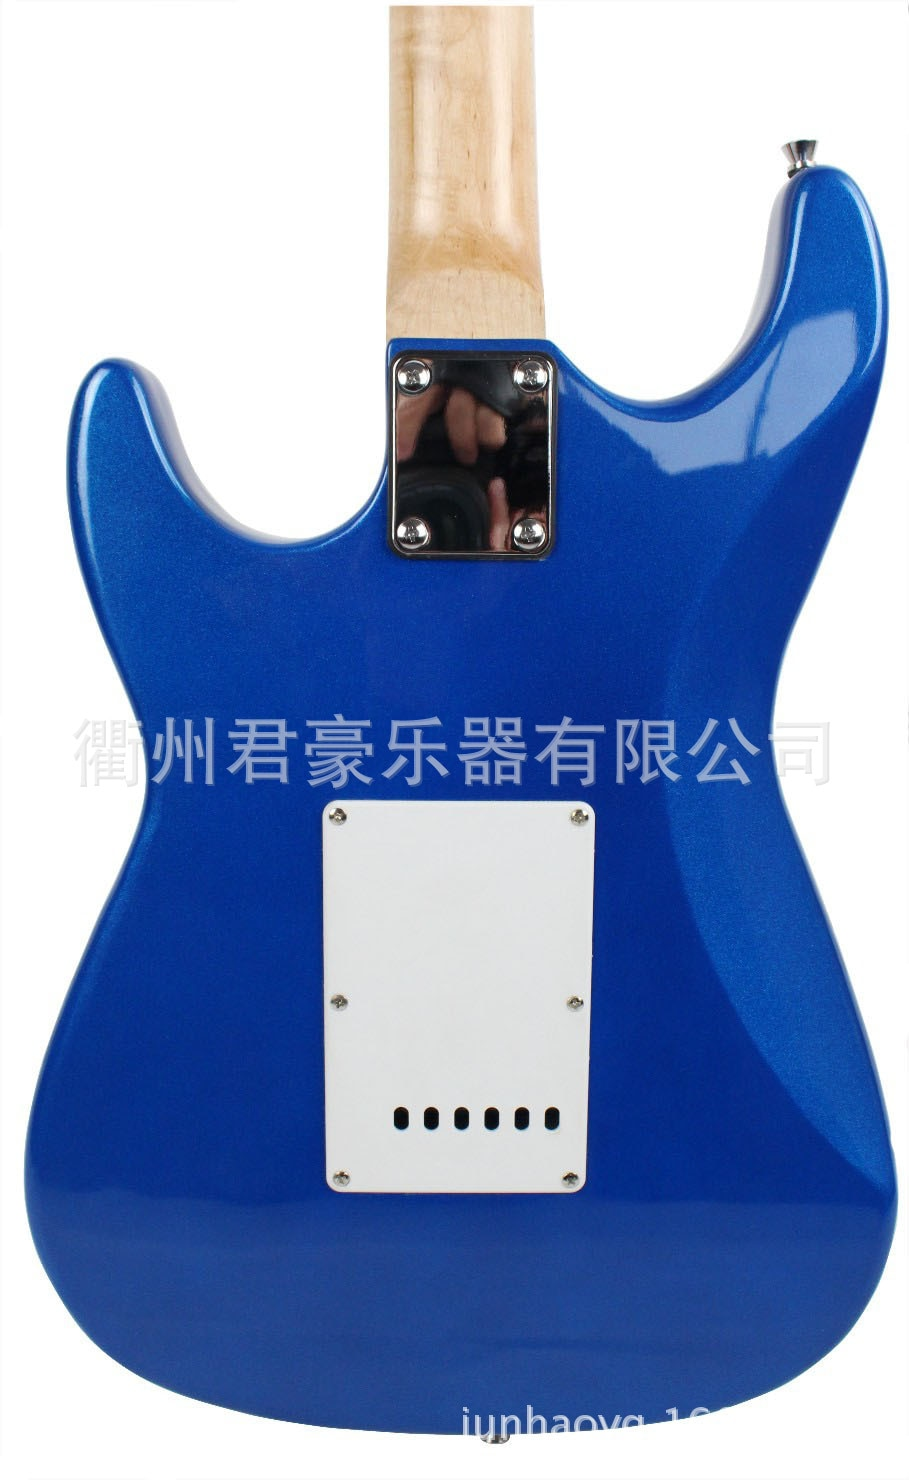 Bridge Wood Electric Guitar Trainer Gifts Music Travel Electric Guitars High Quality Violao Acustico Musical Instruments DL6DJT enlarge